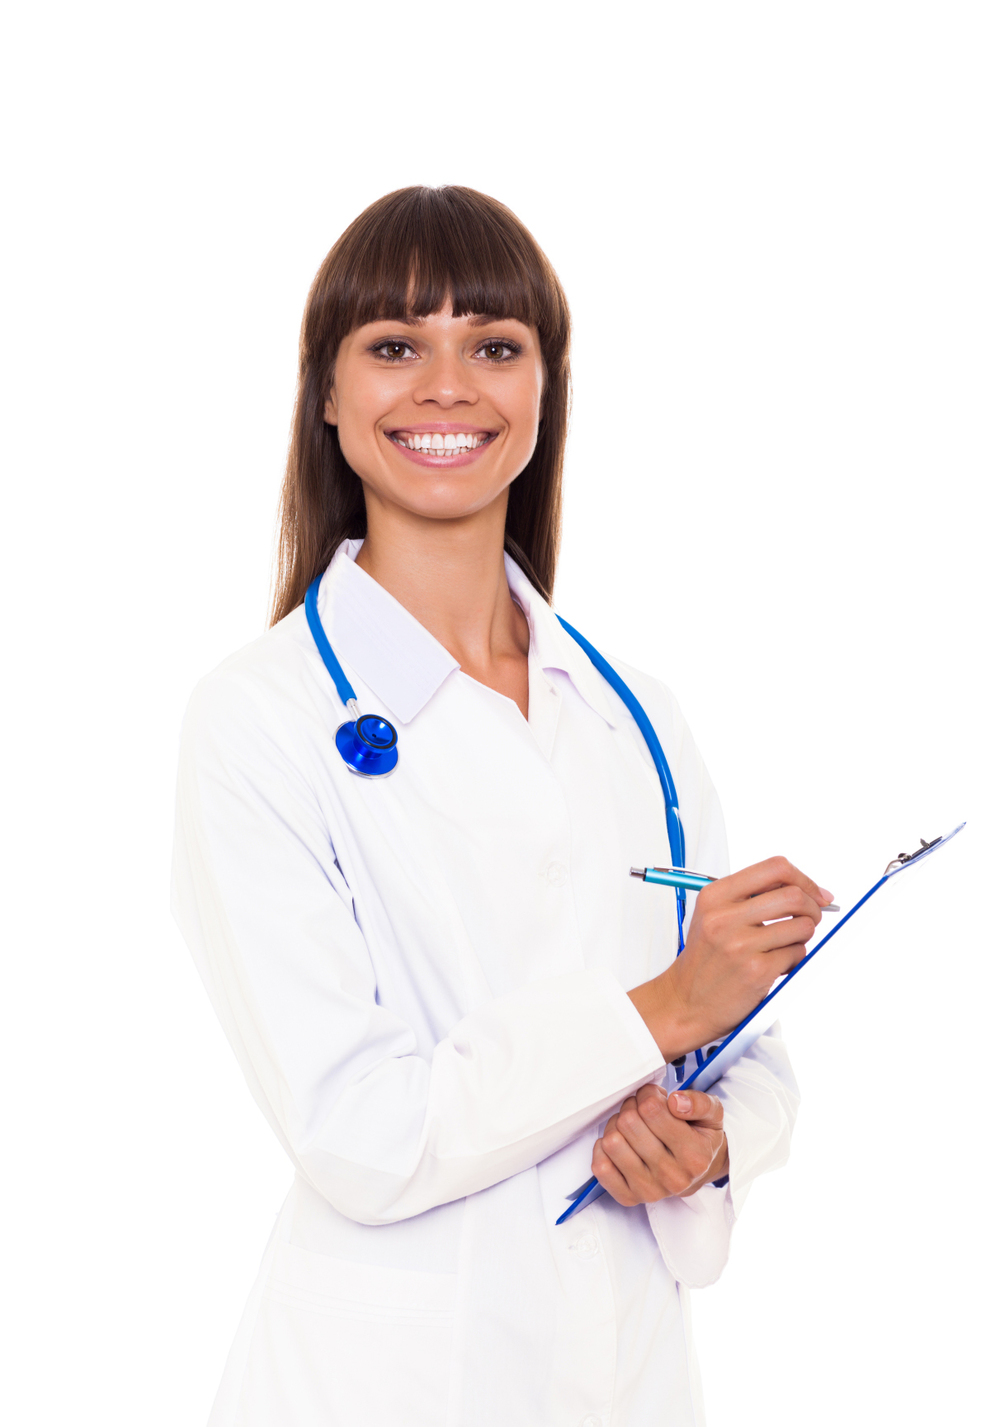 kozzi-medical_doctor_woman_